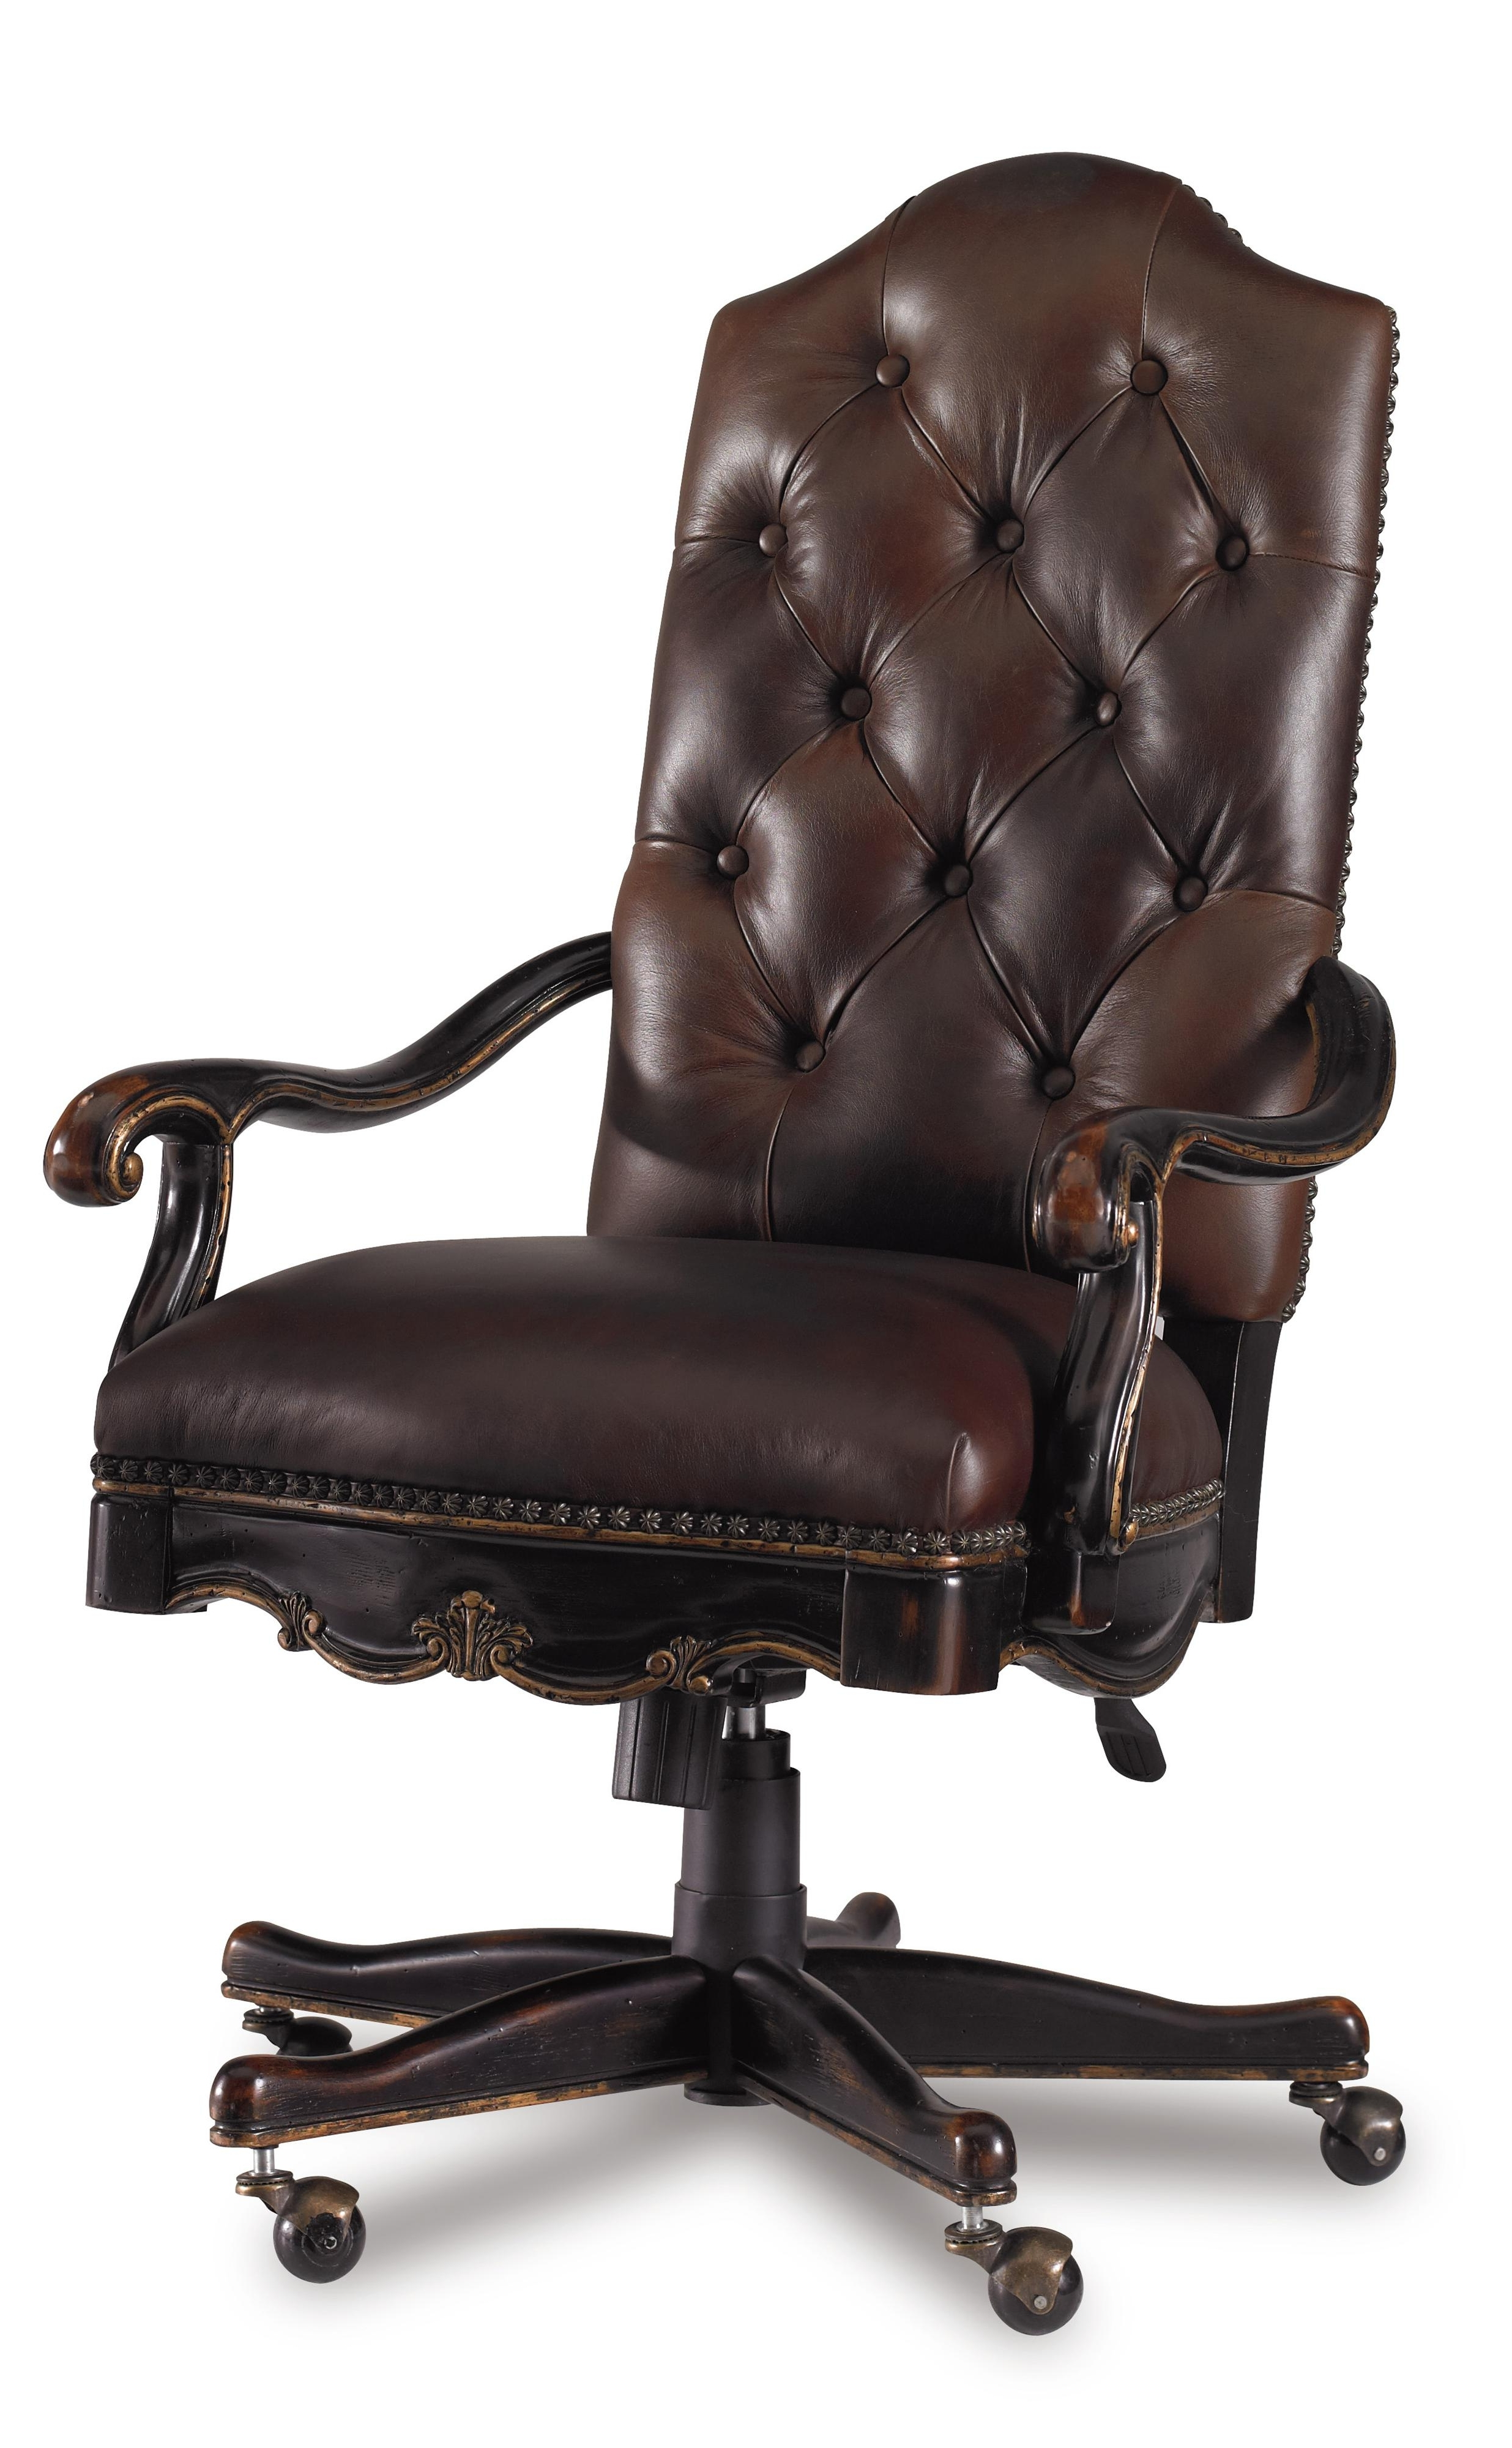 Hooker Furniture Grandover Tufted Leather Executive Office Chair Inside Fashionable Traditional Executive Office Chairs (View 5 of 20)